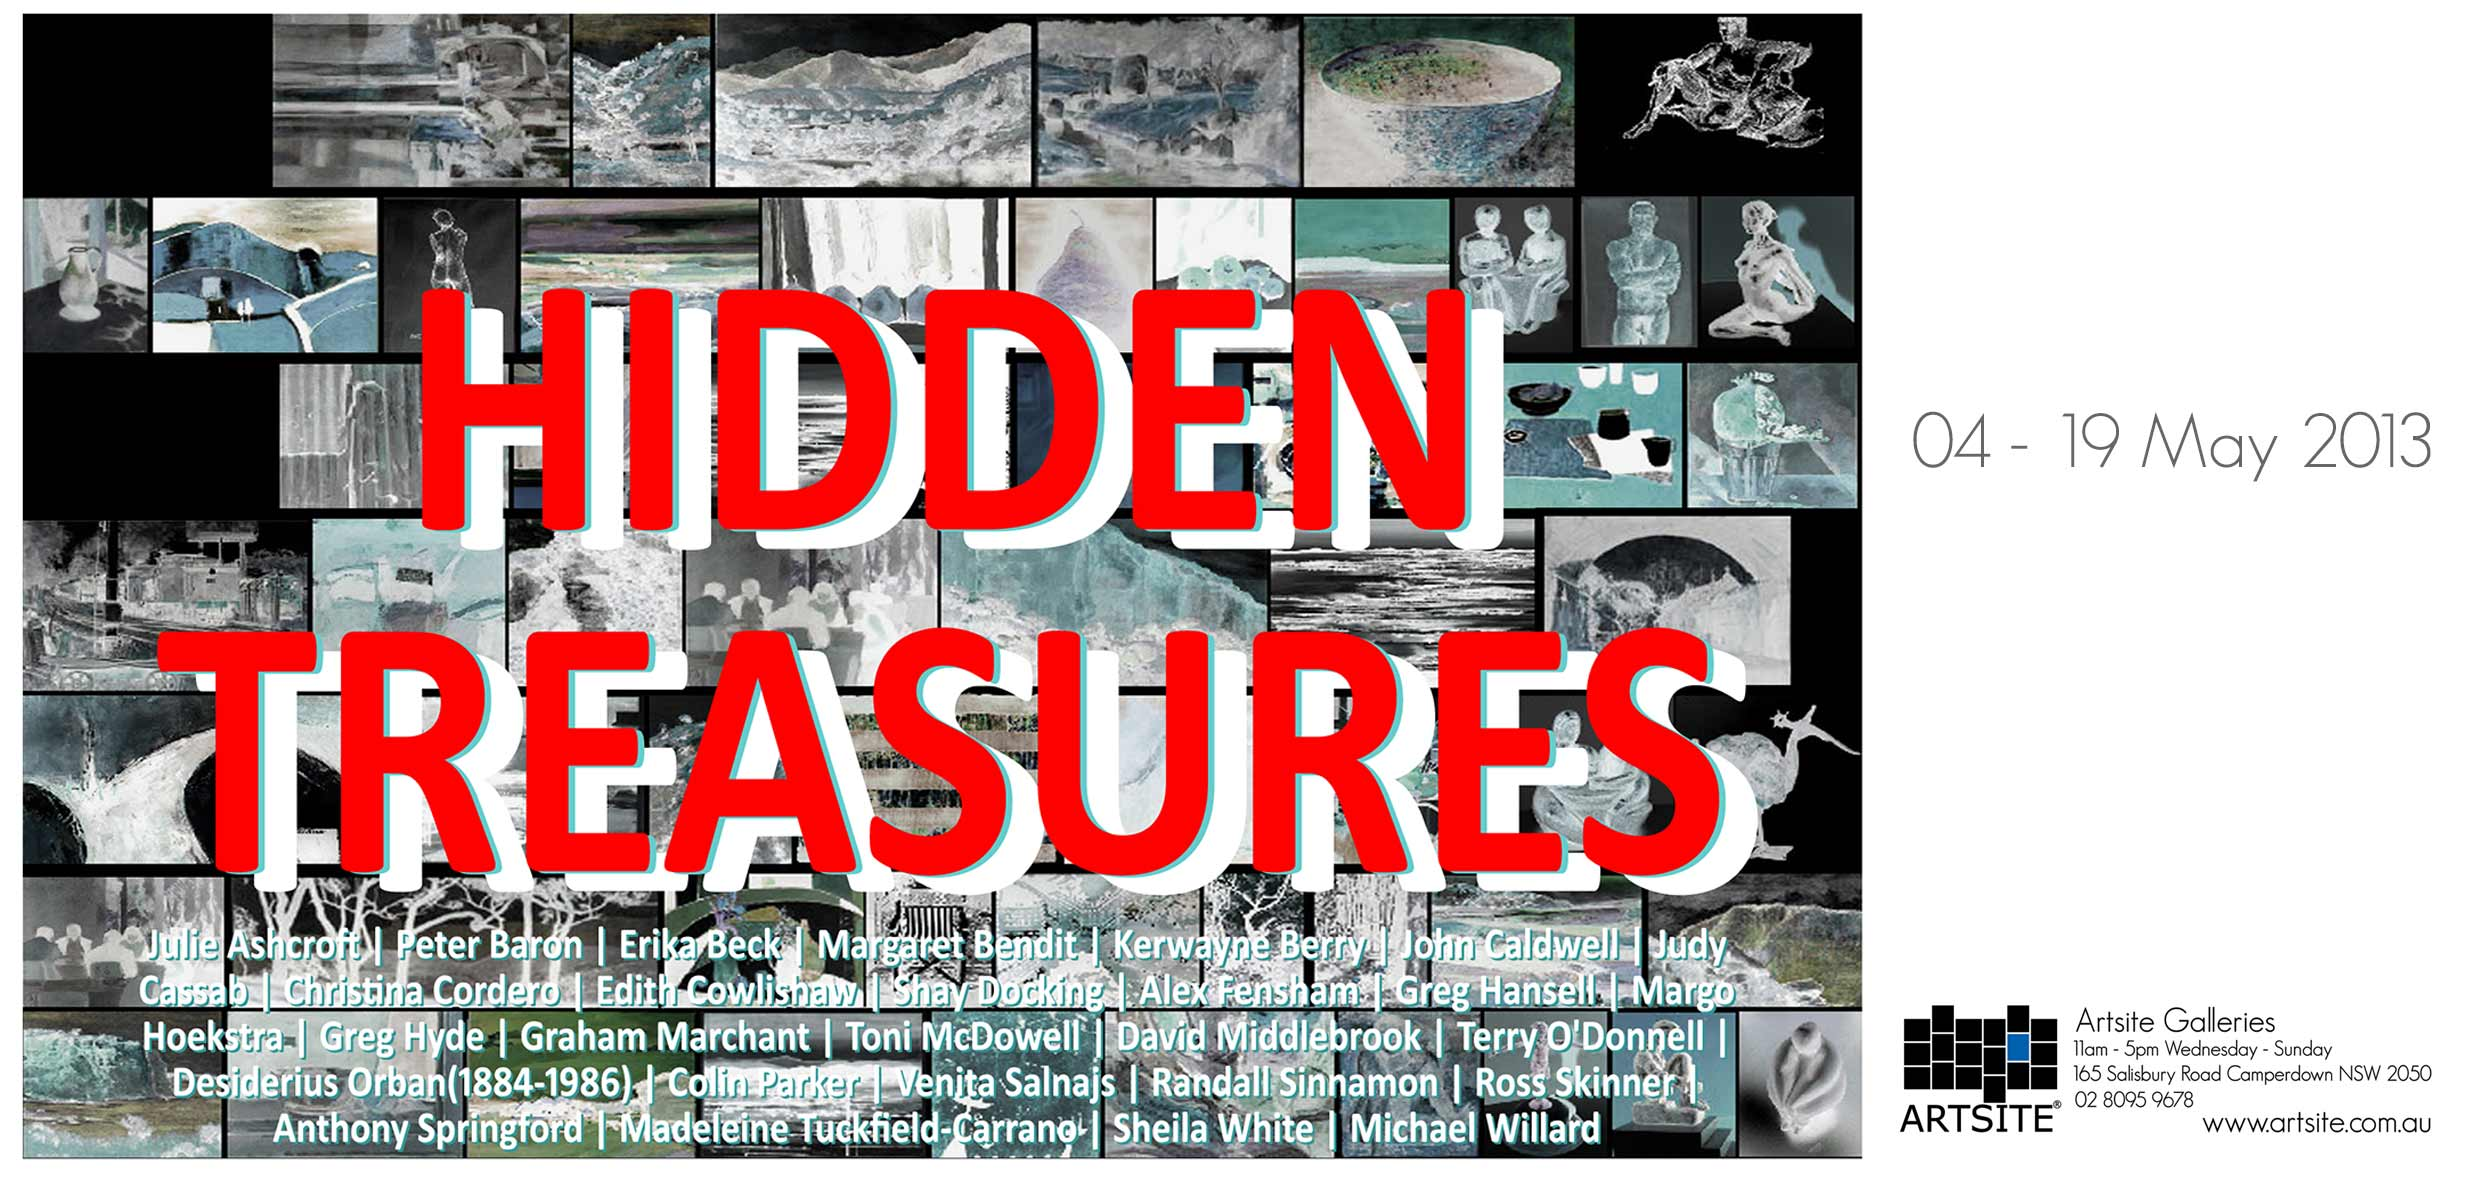 Hidden Treasures Artsite Gallery 04 - 19 May 2013. Artists include: Julie Ashcroft | Peter Baron | Erika Beck | Margaret Bendit | Kerwayne Berry | John Caldwell | Judy Cassab | Christina Cordero | Edith Cowlishaw | Shay Docking | Alex Fensham | Greg Hansell | Margo Hoekstra | Greg Hyde | Graham Marchant | Toni McDowell | David Middlebrook | Terry O'Donnell | Desiderius Orban(1884-1986) | Colin Parker | Venita Salnajs | Randall Sinnamon | Ross Skinner | Anthony Springford | Tuckfield-Carrano | Sheila White | Michael Willard.